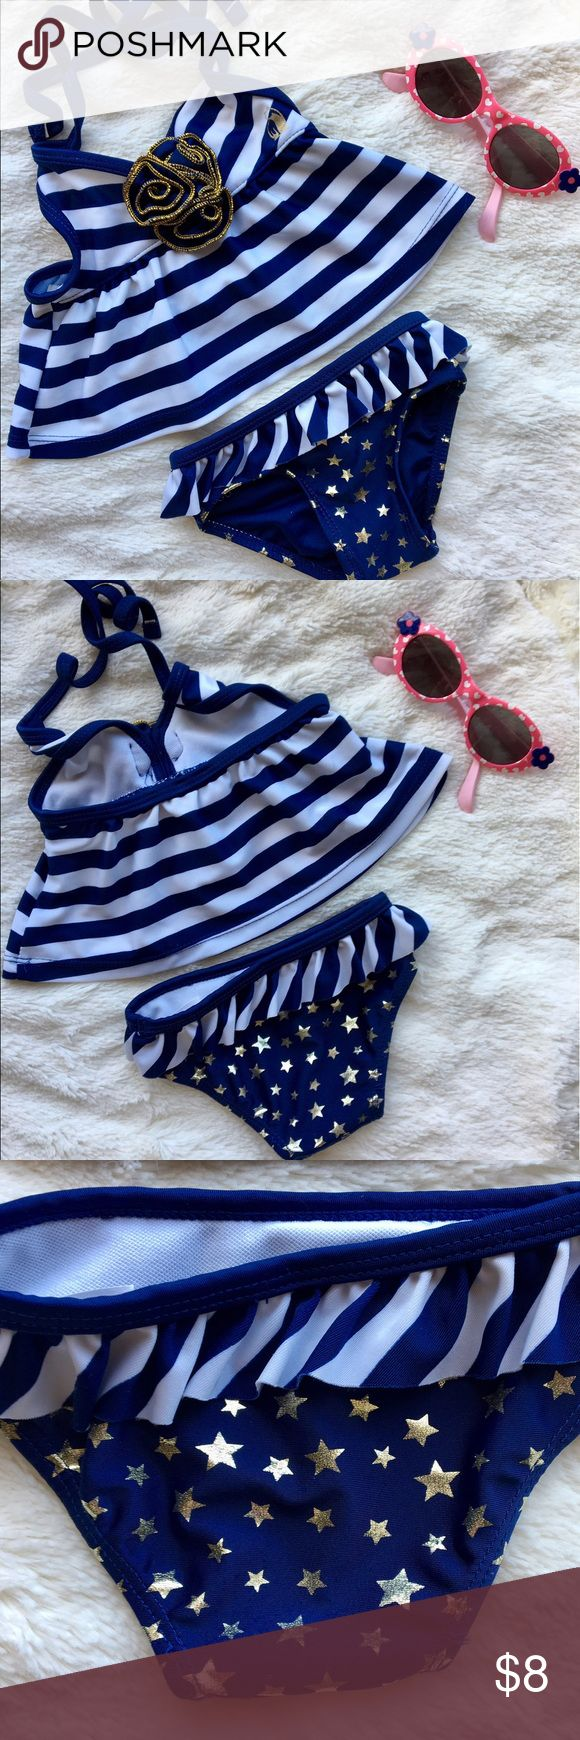 Tankini gold stars blue white stripes Like new blue and white tankini. So cute, great for Memorial Day weekend, 4th of July or just because it's adorable! Rugged Bear size 12 months Swim Bikinis